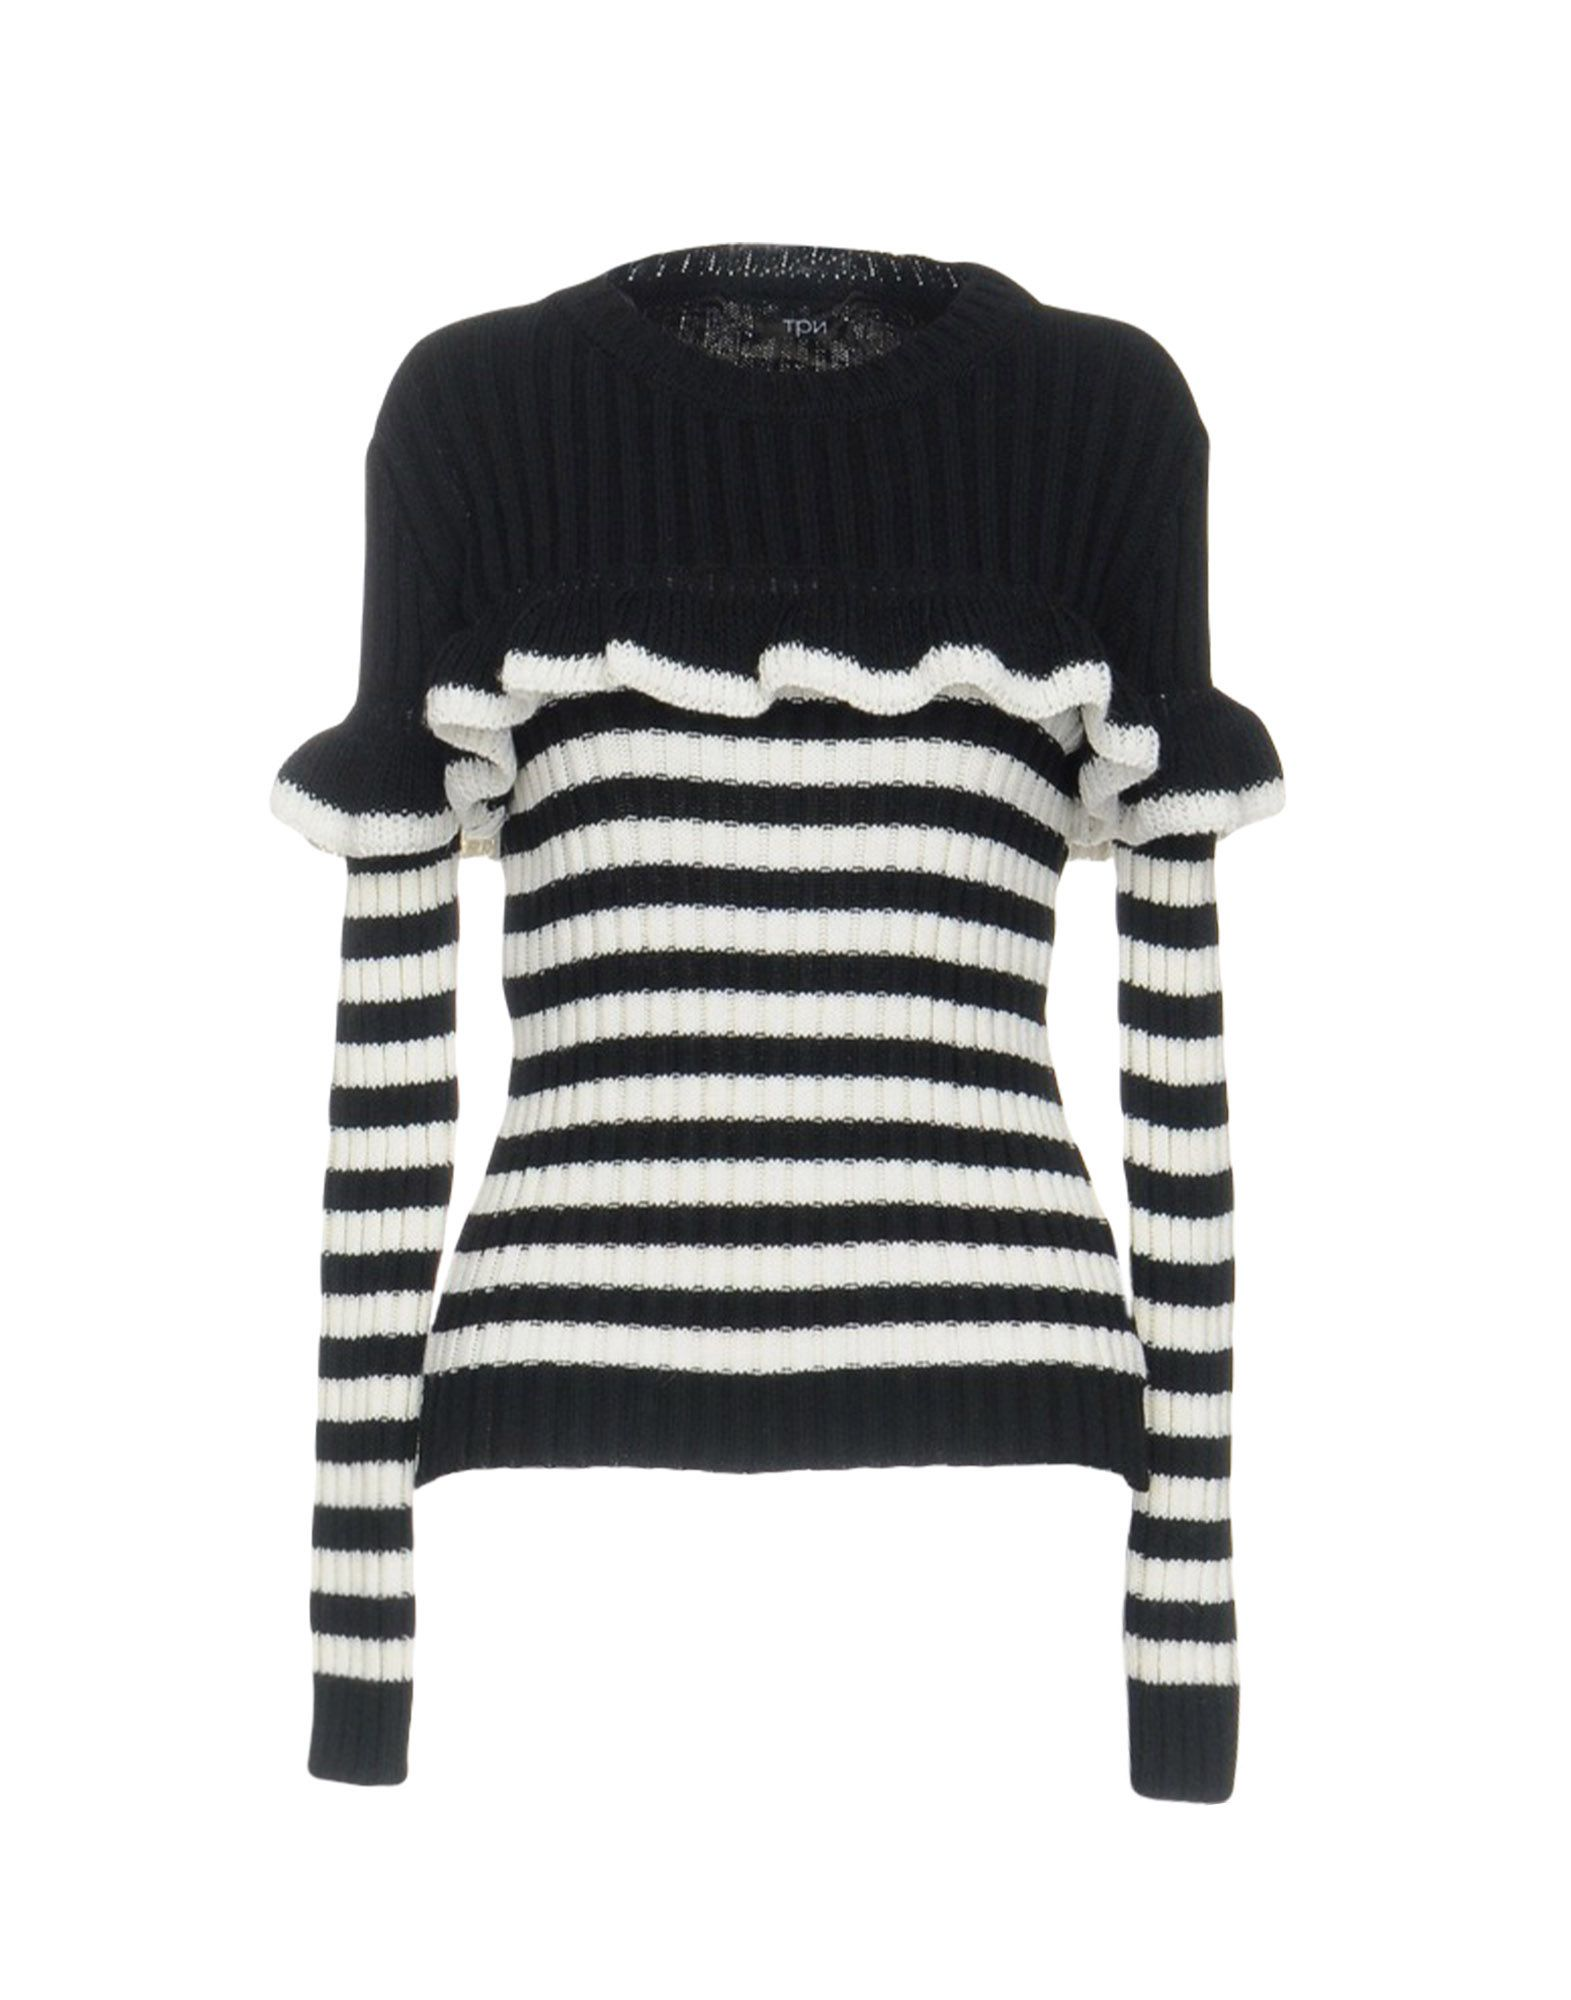 TPN Sweater in Black